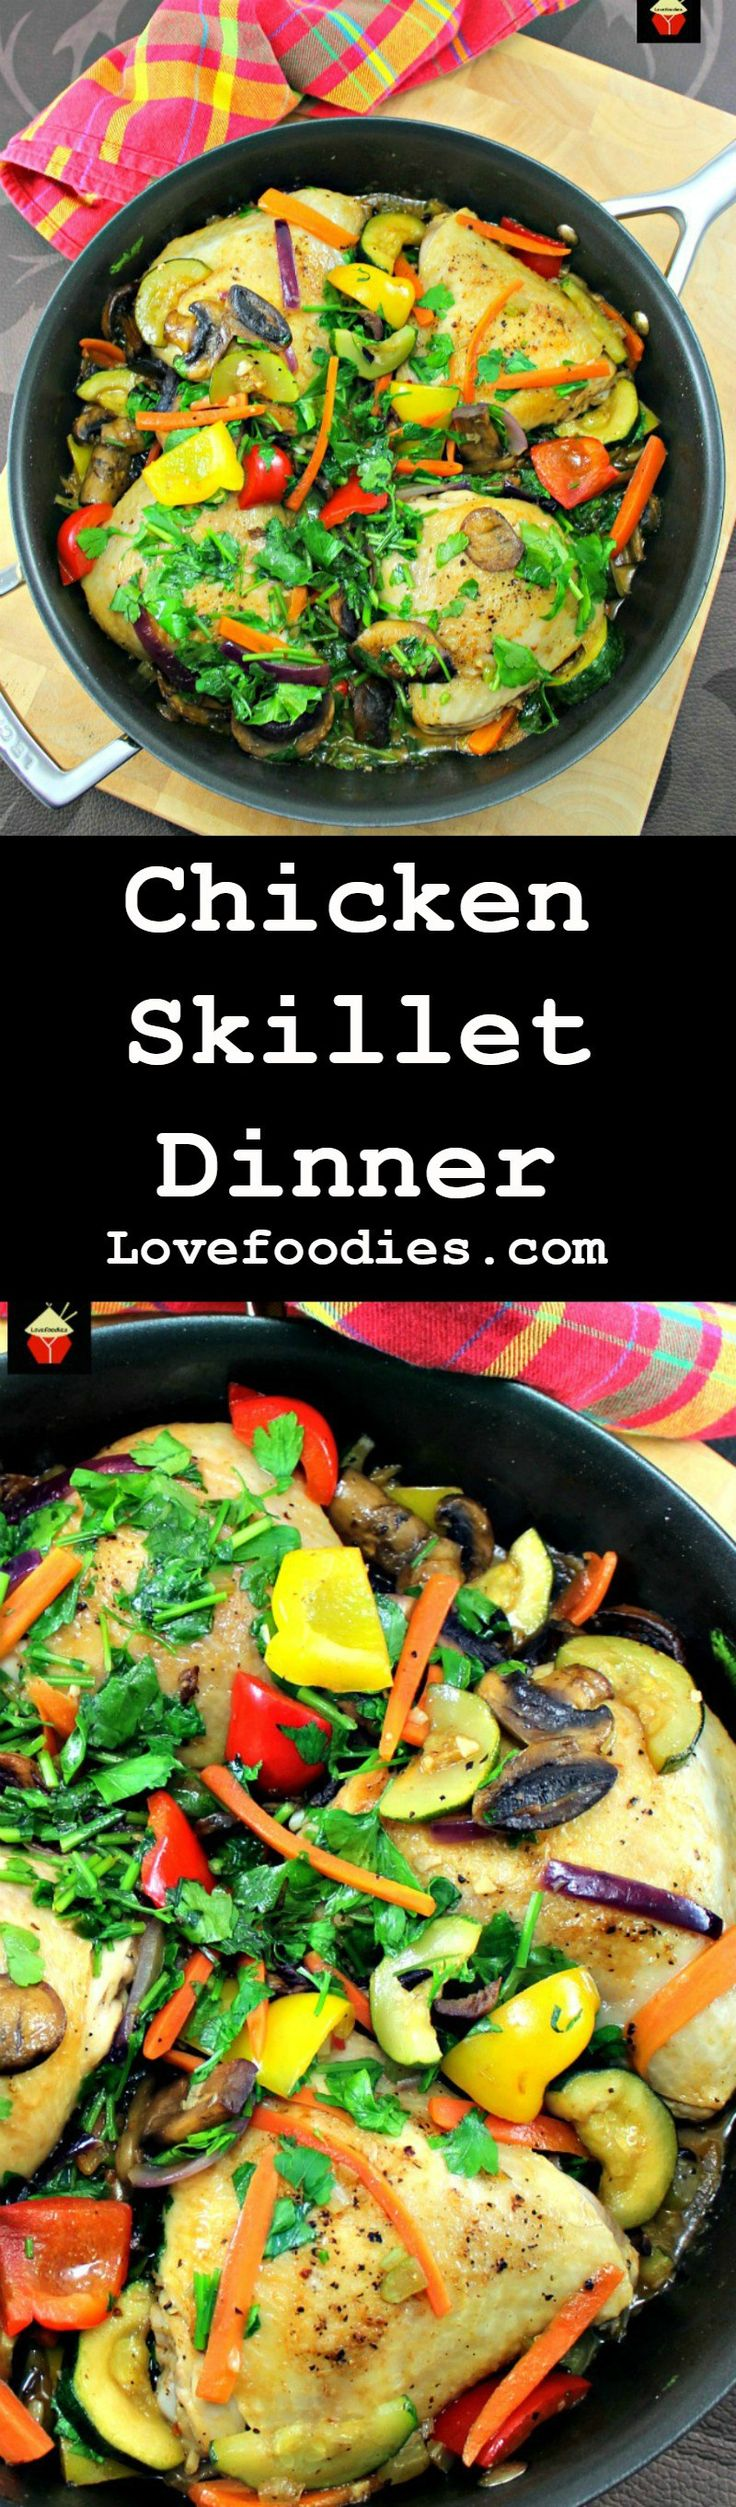 Chicken Skillet Dinner! This is a great recipe, suitable for a family meal or a dinner party. Uses fresh ingredients to give you a full flavor, colorful and really tasty meal. Goes nice served with your favorite rice, pasta or cous cous. Yummy! Great for chicken drumsticks or thighs.   Lovefoodies.com